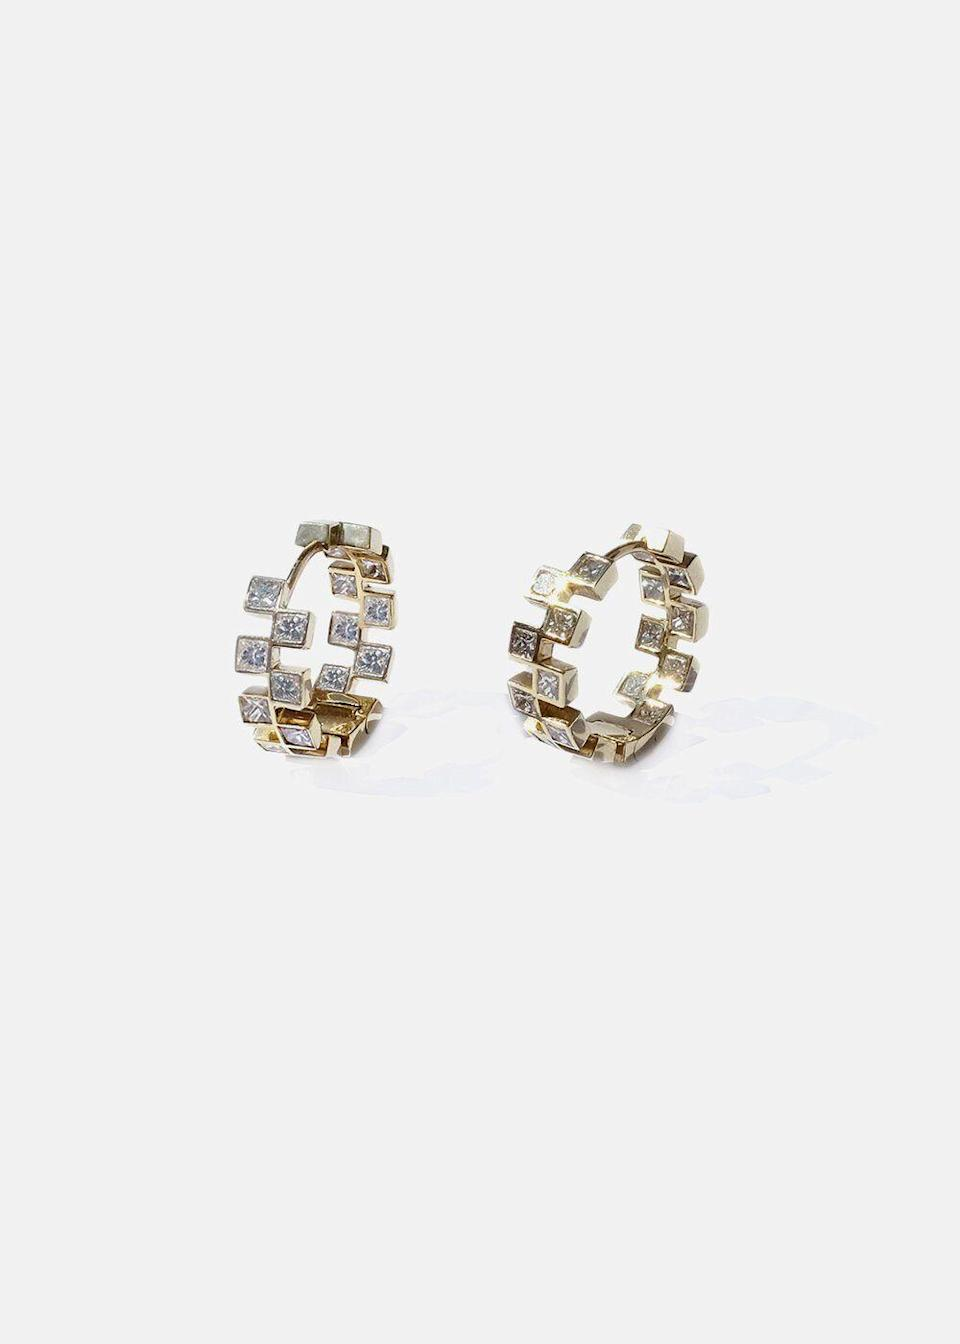 """<p><strong>KATKIM Fine Jewelry </strong></p><p>katkimfinejewelry.com</p><p><strong>$8600.00</strong></p><p><a href=""""https://katkimfinejewelry.com/collections/earrings/products/anerise-hoops"""" rel=""""nofollow noopener"""" target=""""_blank"""" data-ylk=""""slk:Shop Now"""" class=""""link rapid-noclick-resp"""">Shop Now</a></p><p>Crafted of 18-karat polished gold, these pieces feature invisible set princess-cut diamonds weighing 2.30 carats. They're a lovely modern update to her classic hoops. </p>"""